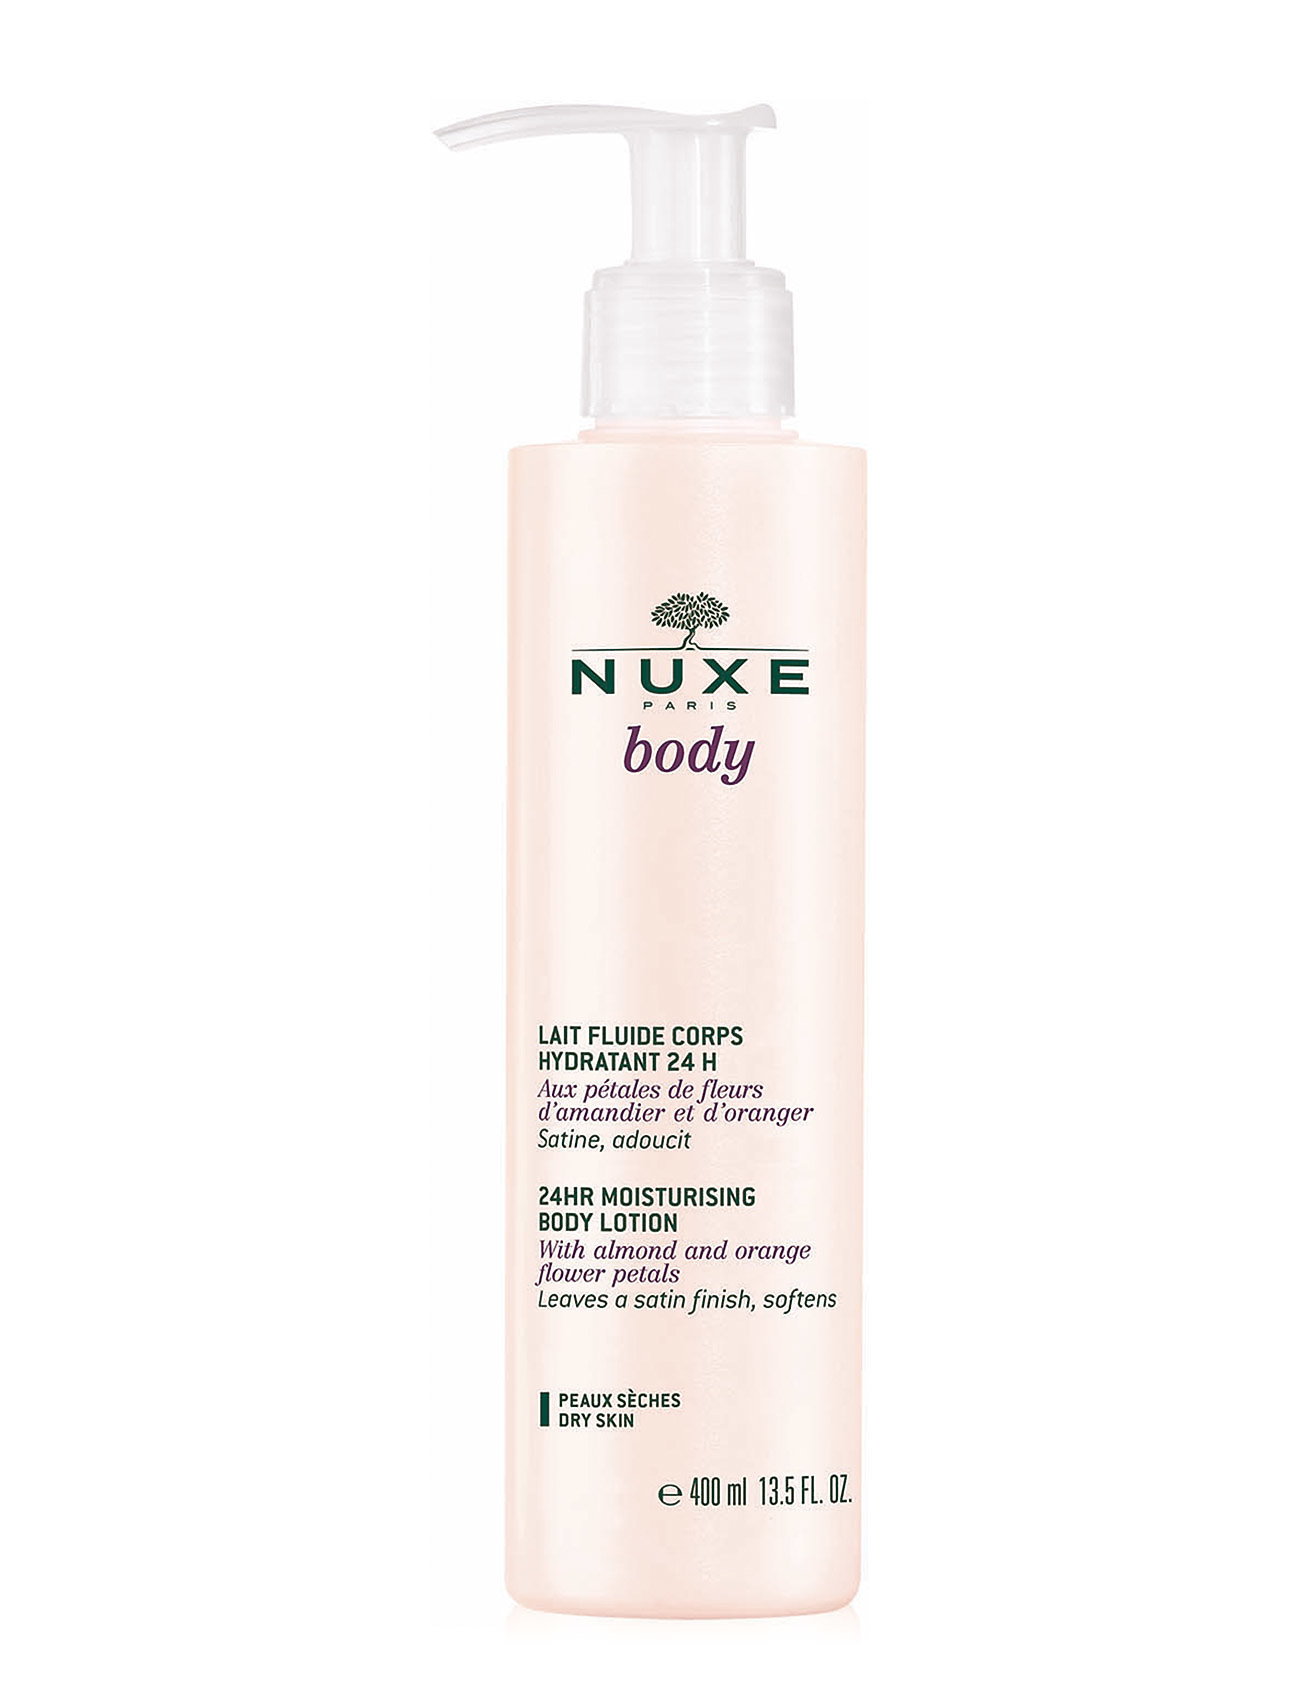 nuxe Moisturizing body lotion 24h fra boozt.com dk